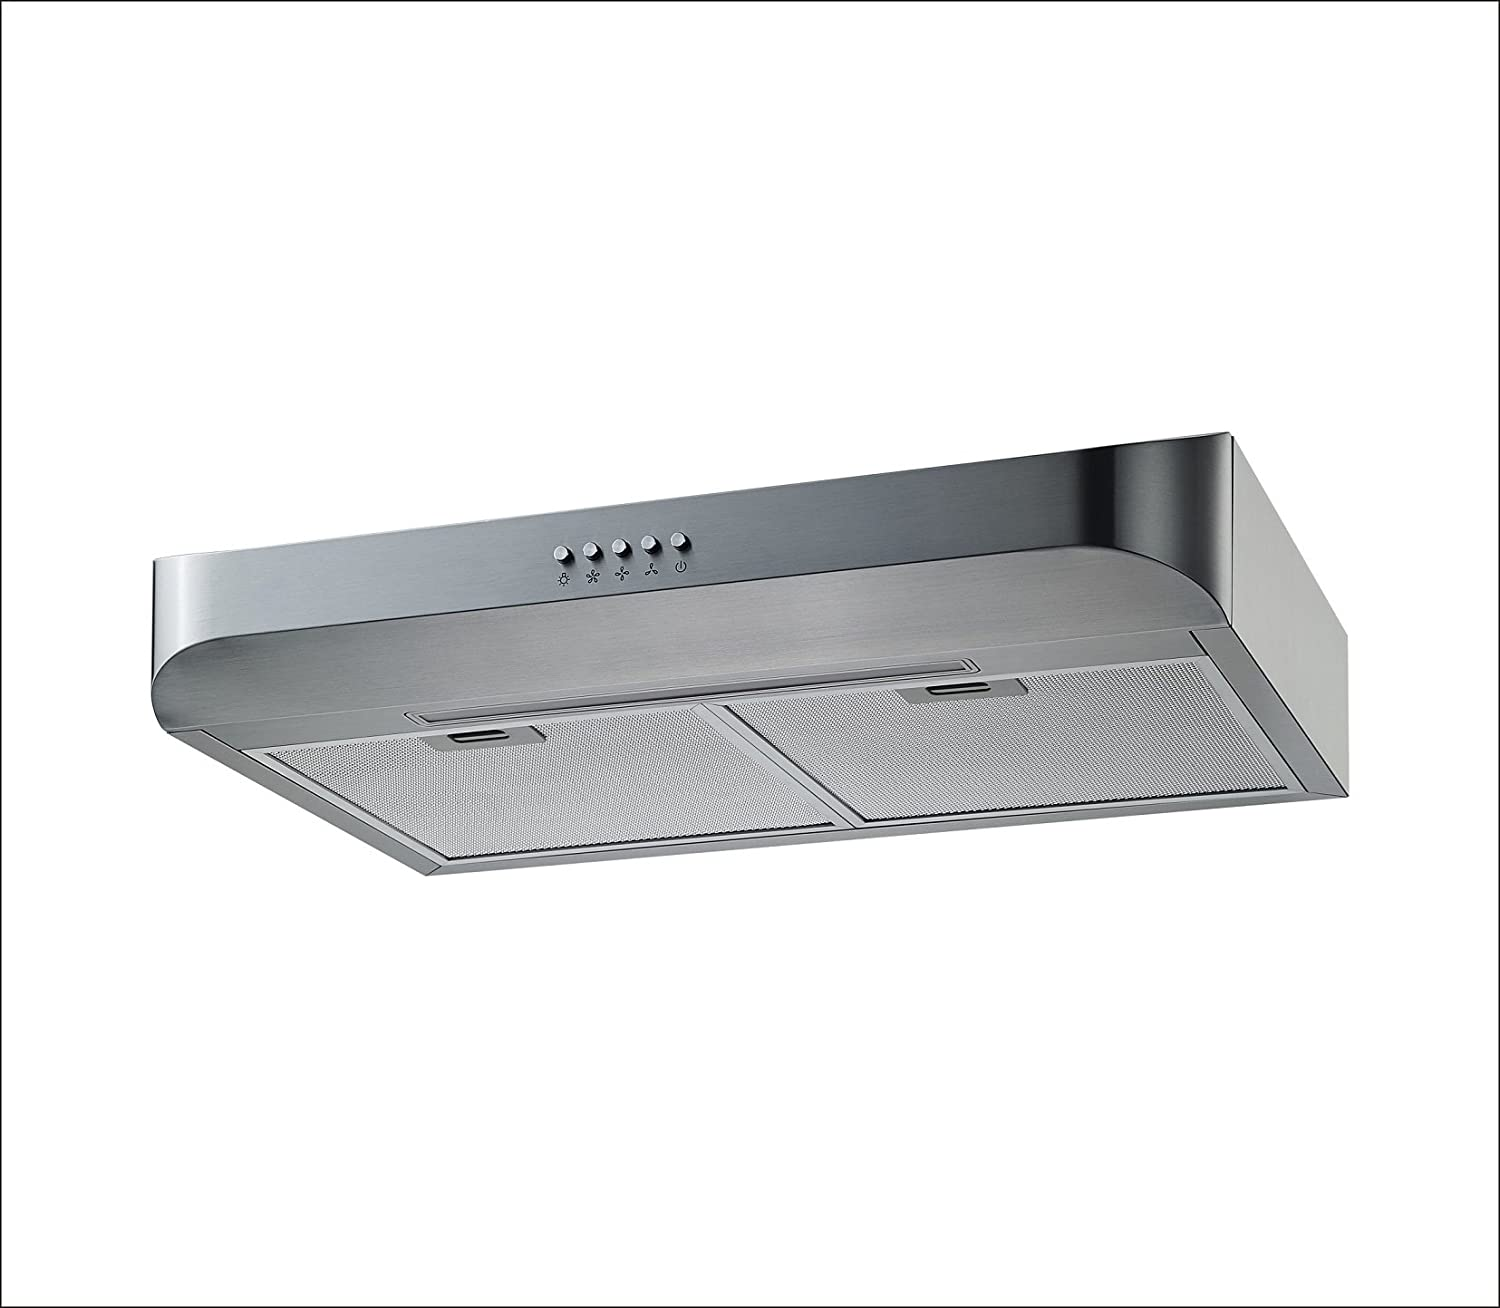 "Winflo 30"" Under Cabinet Stainless Steel European Slim Design Kitchen Range Hood Push Button Control Included Dishwasher-Safe Aluminum Filters and LED Light"